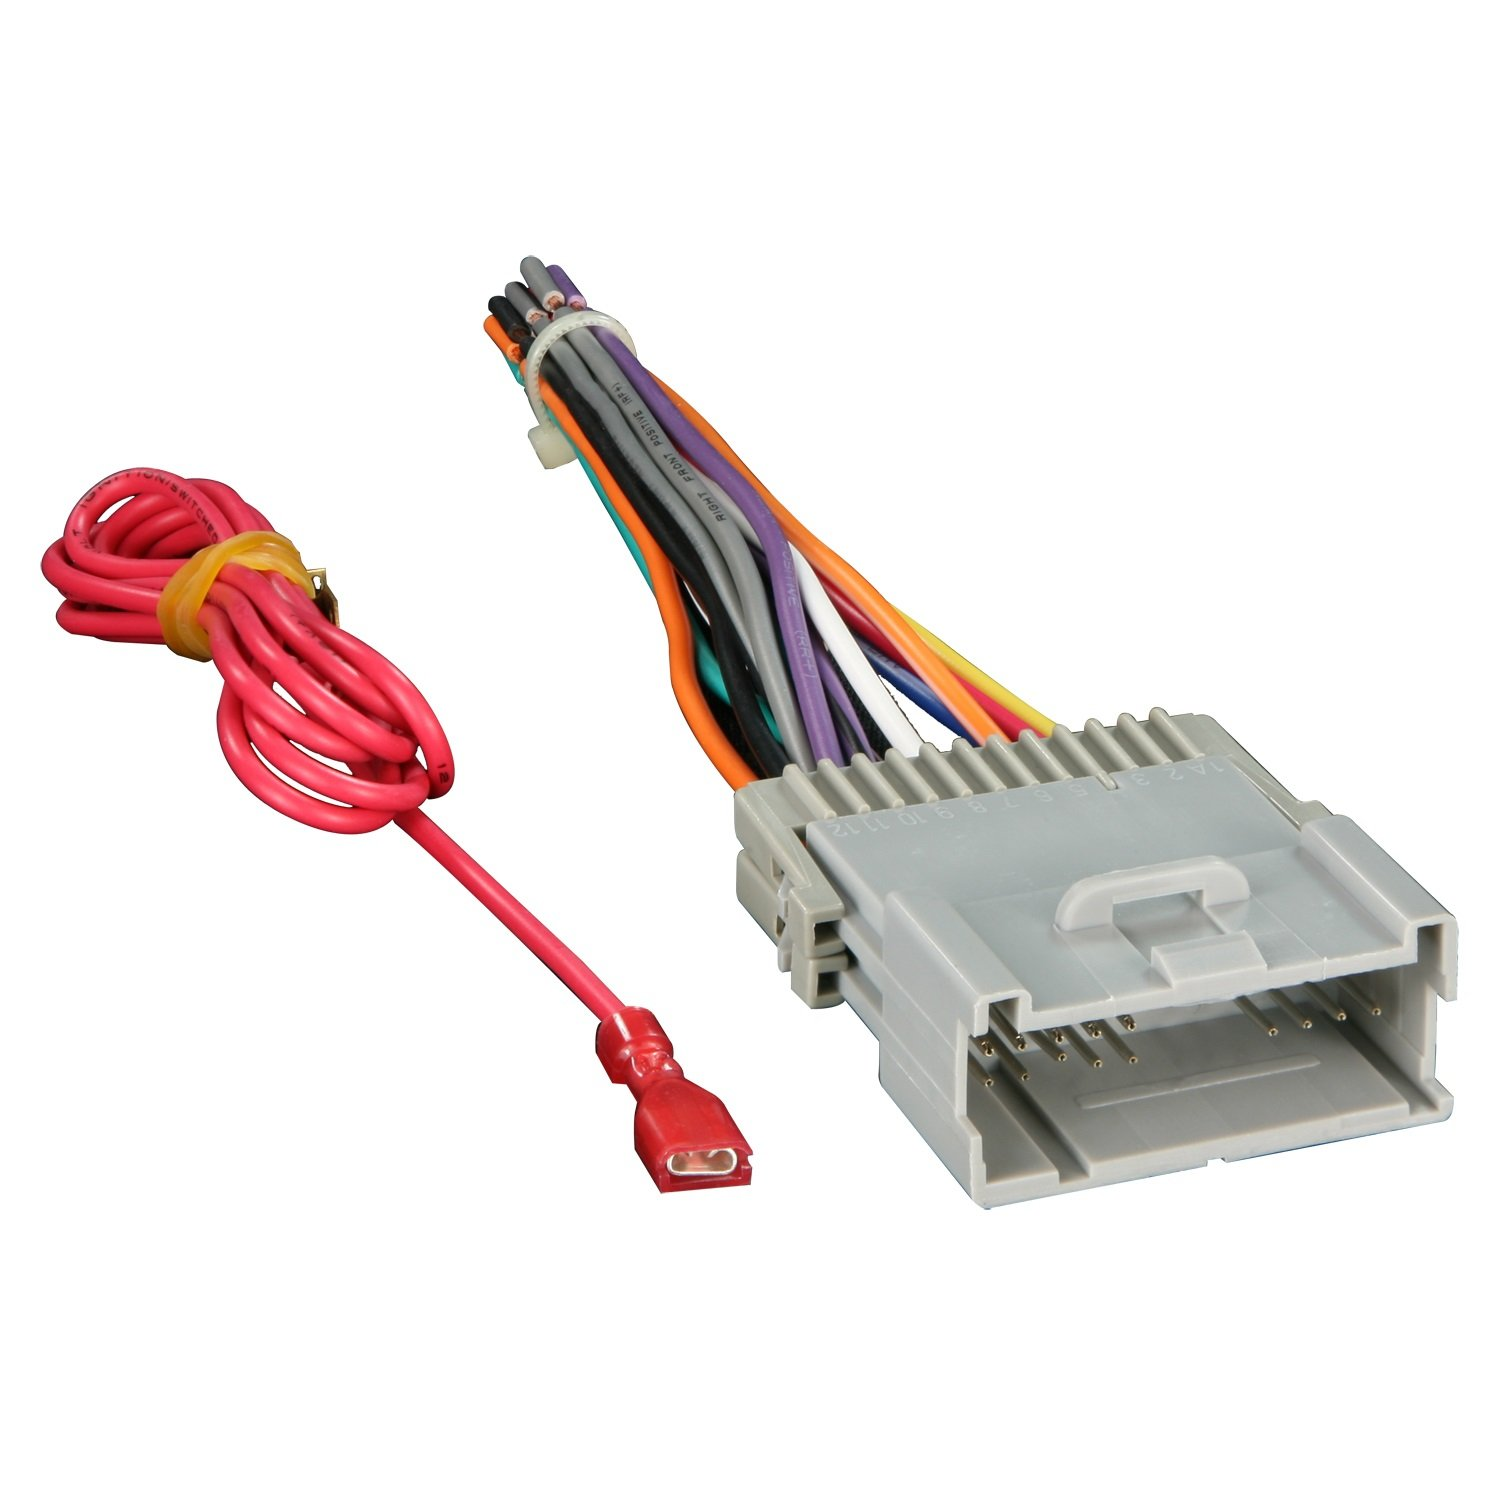 61eewxp9orL._SL1500_ amazon com metra 70 2003 radio wiring harness for gm 98 08 kenwood ford wiring adapter harness at n-0.co